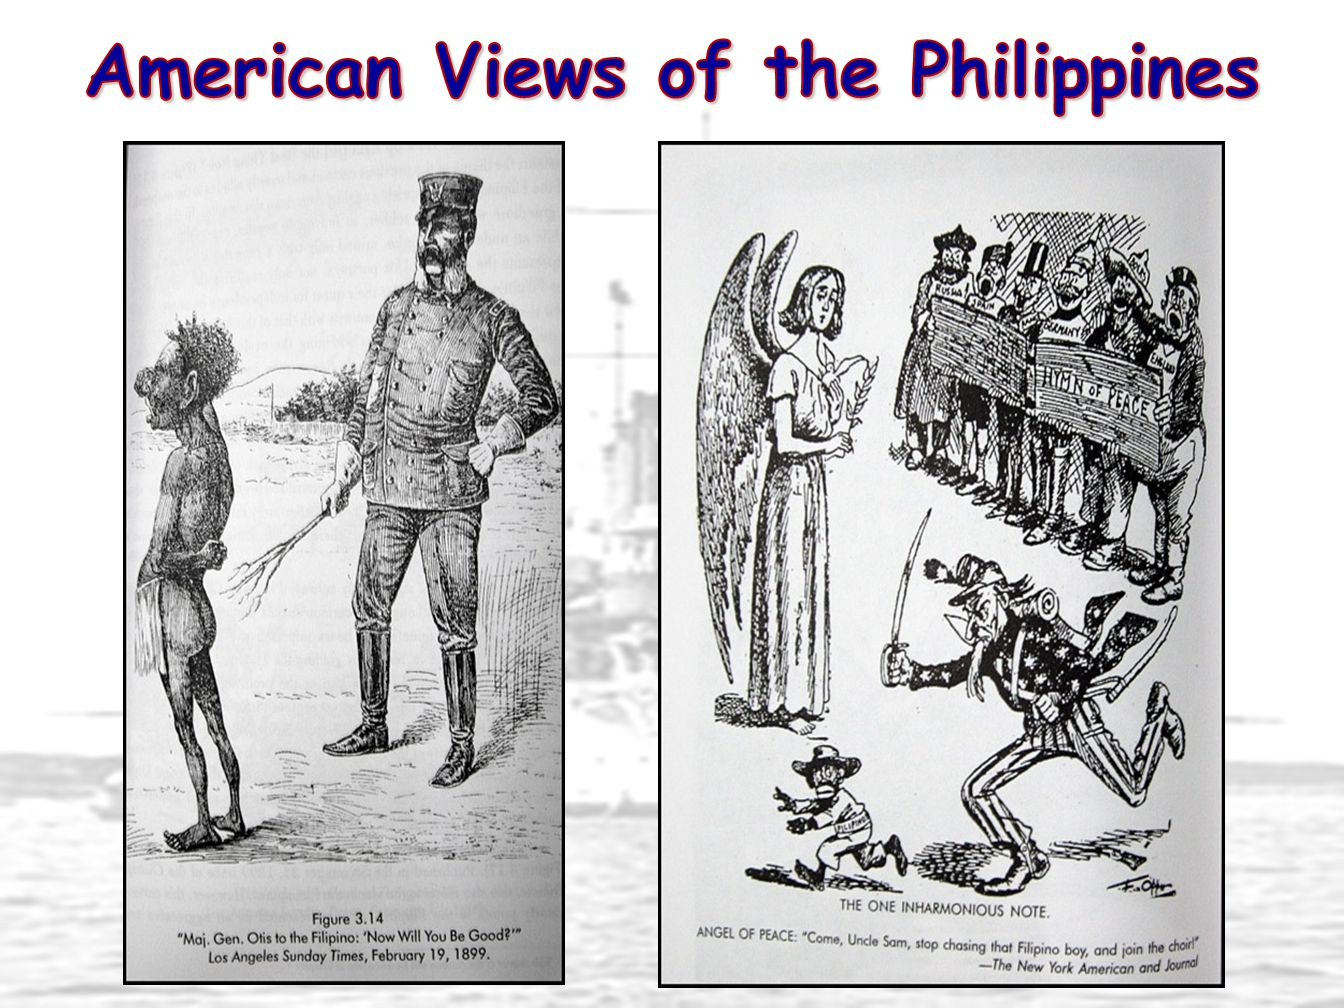 American Views of the Philippines